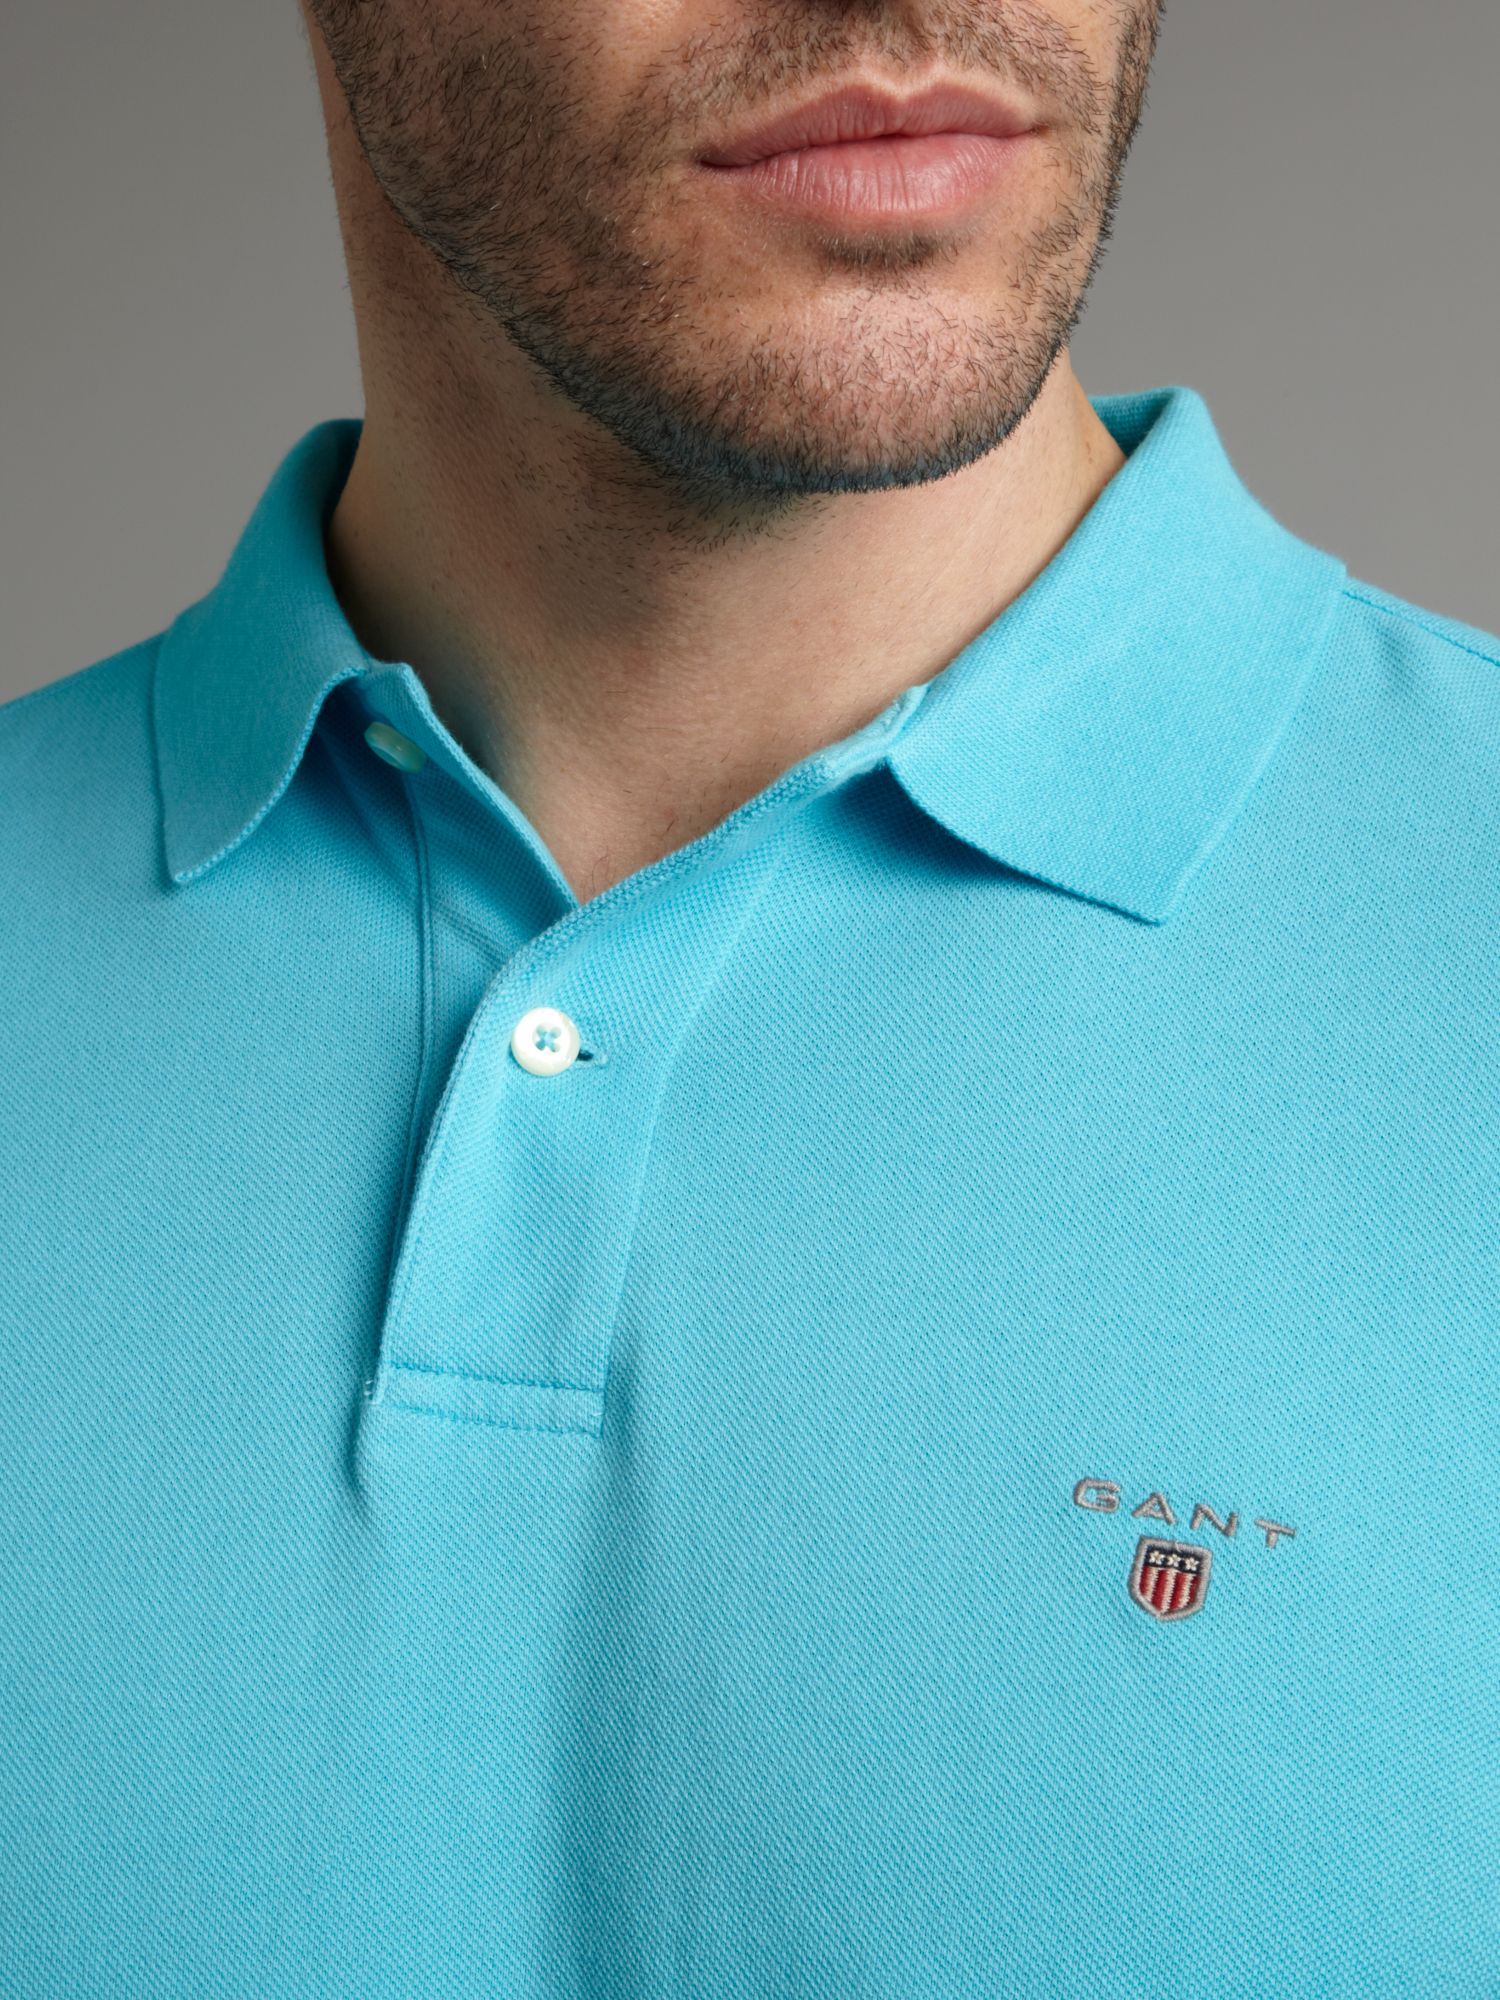 GANT Classic Fitted Polo Shirt in Turquoise (Blue) for Men